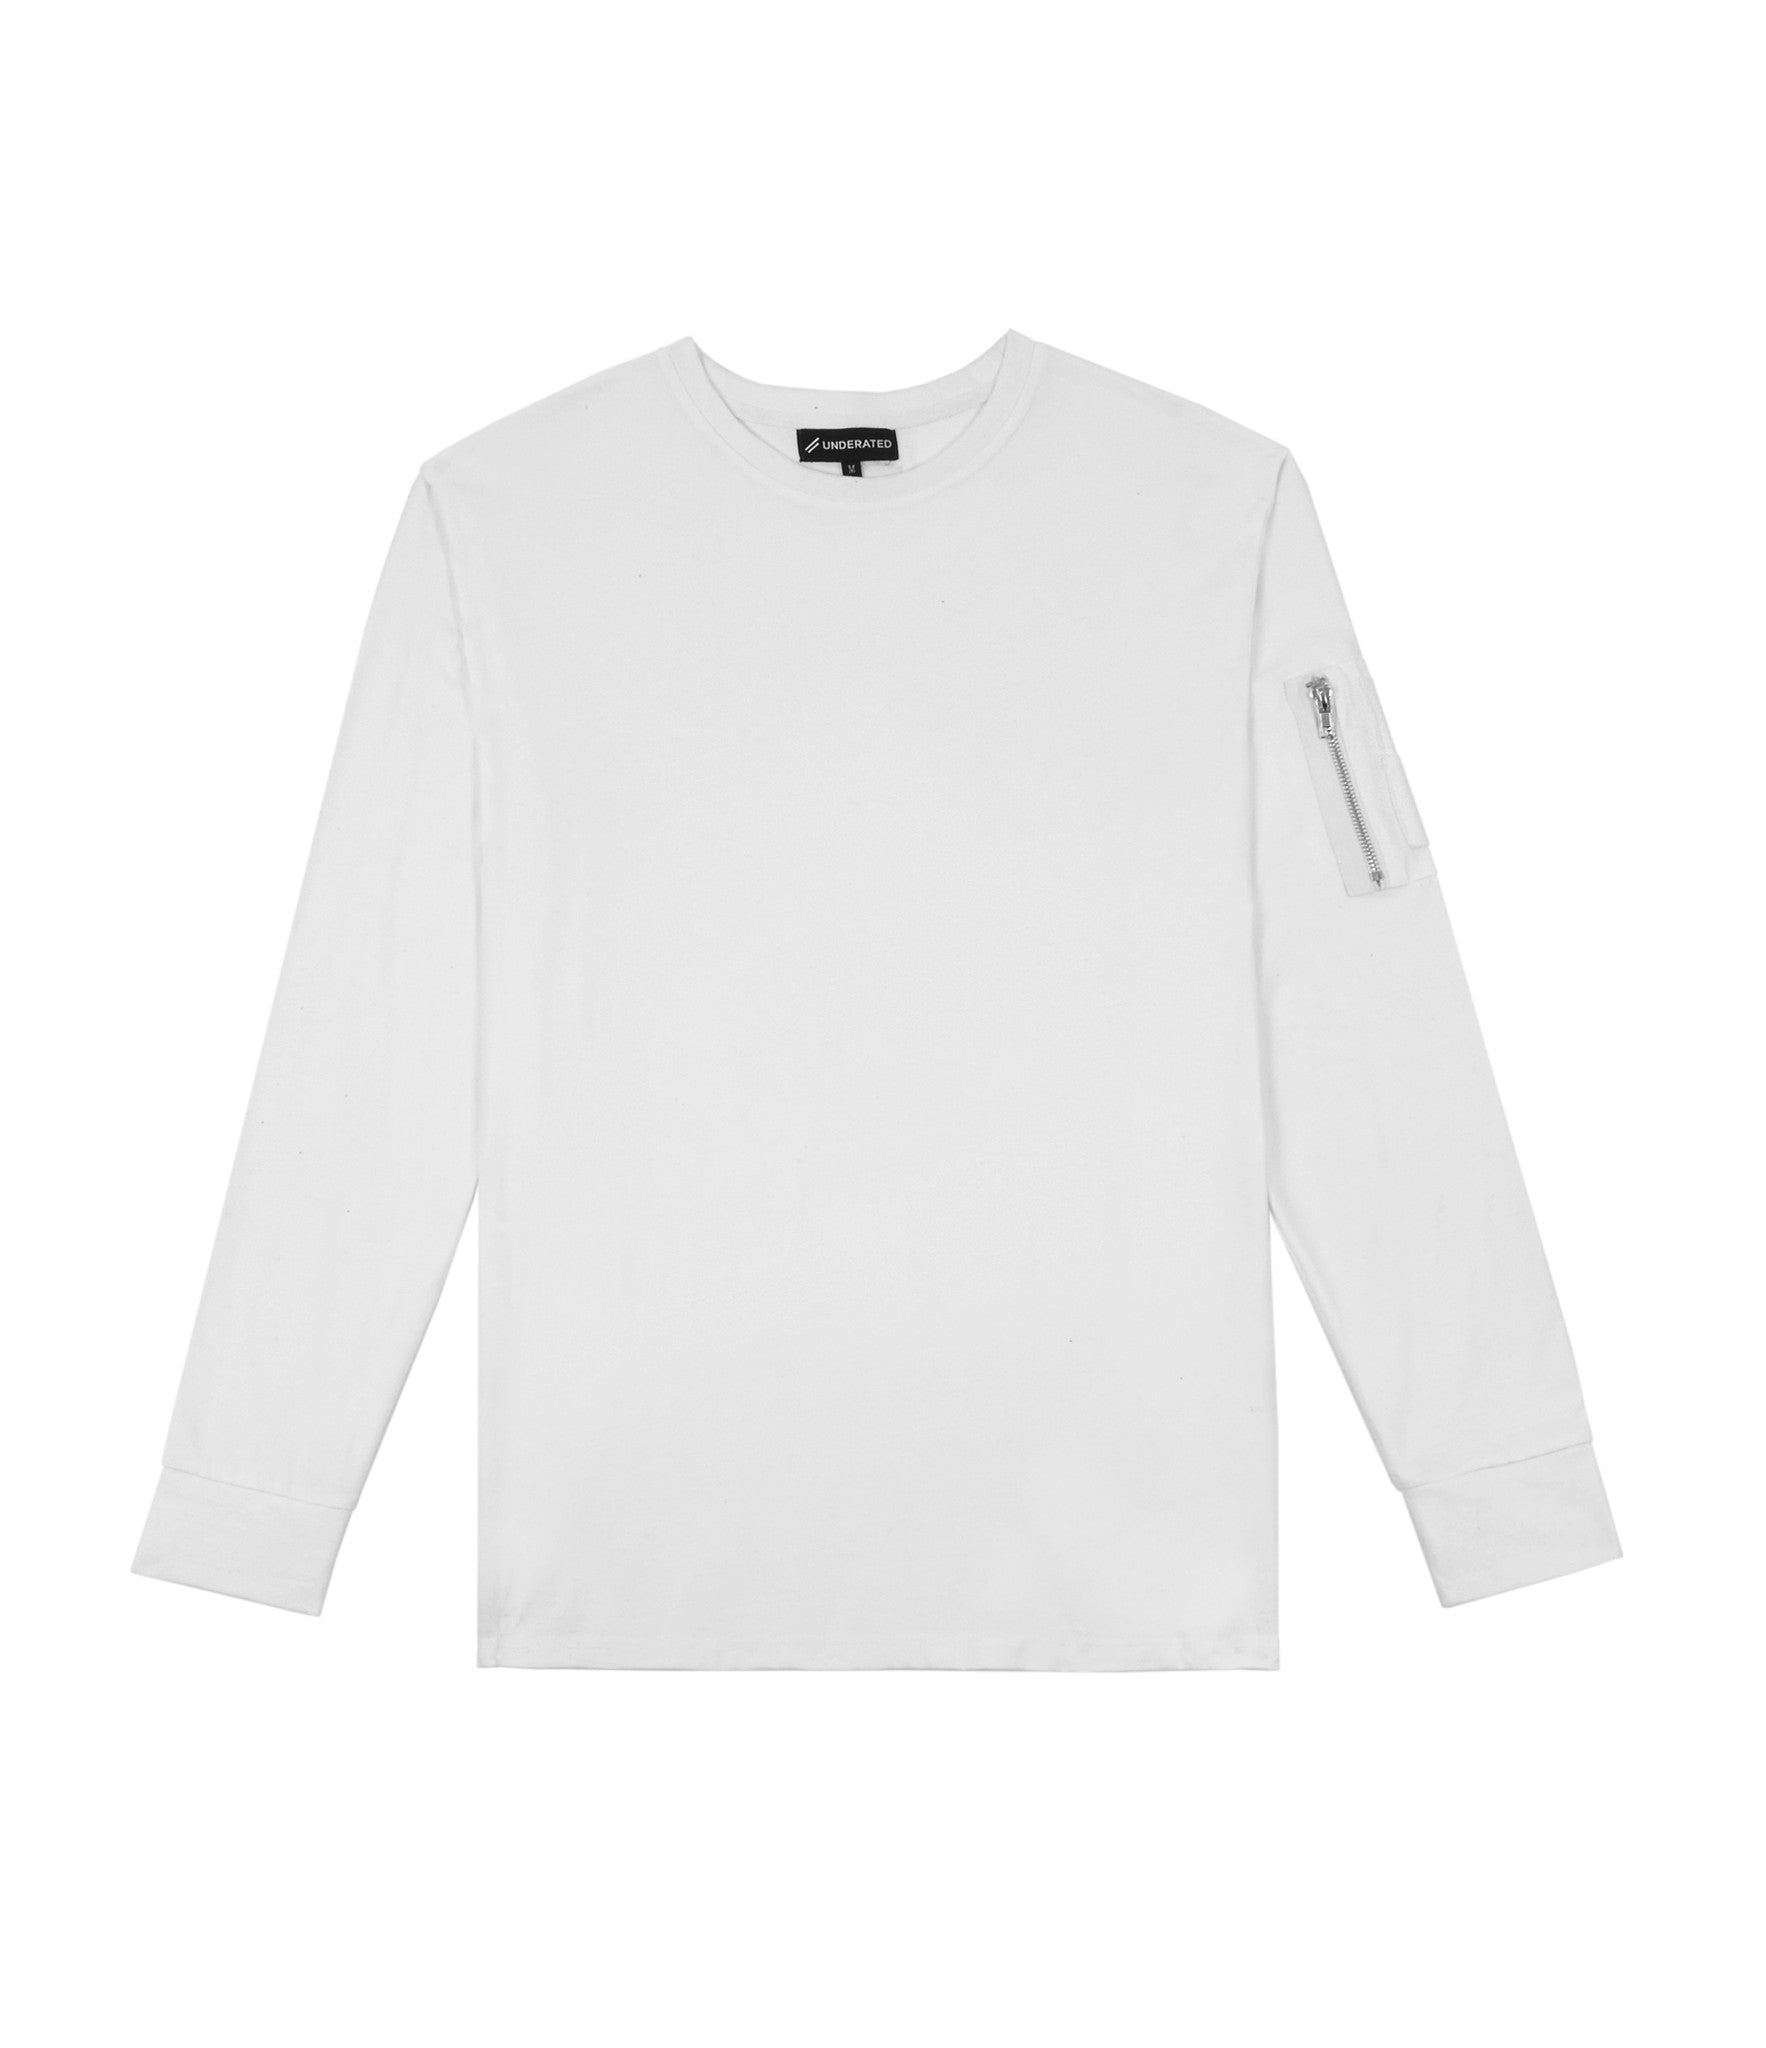 LS303 Utility Long-Sleeve Tee - White - underated london - underatedco - 1